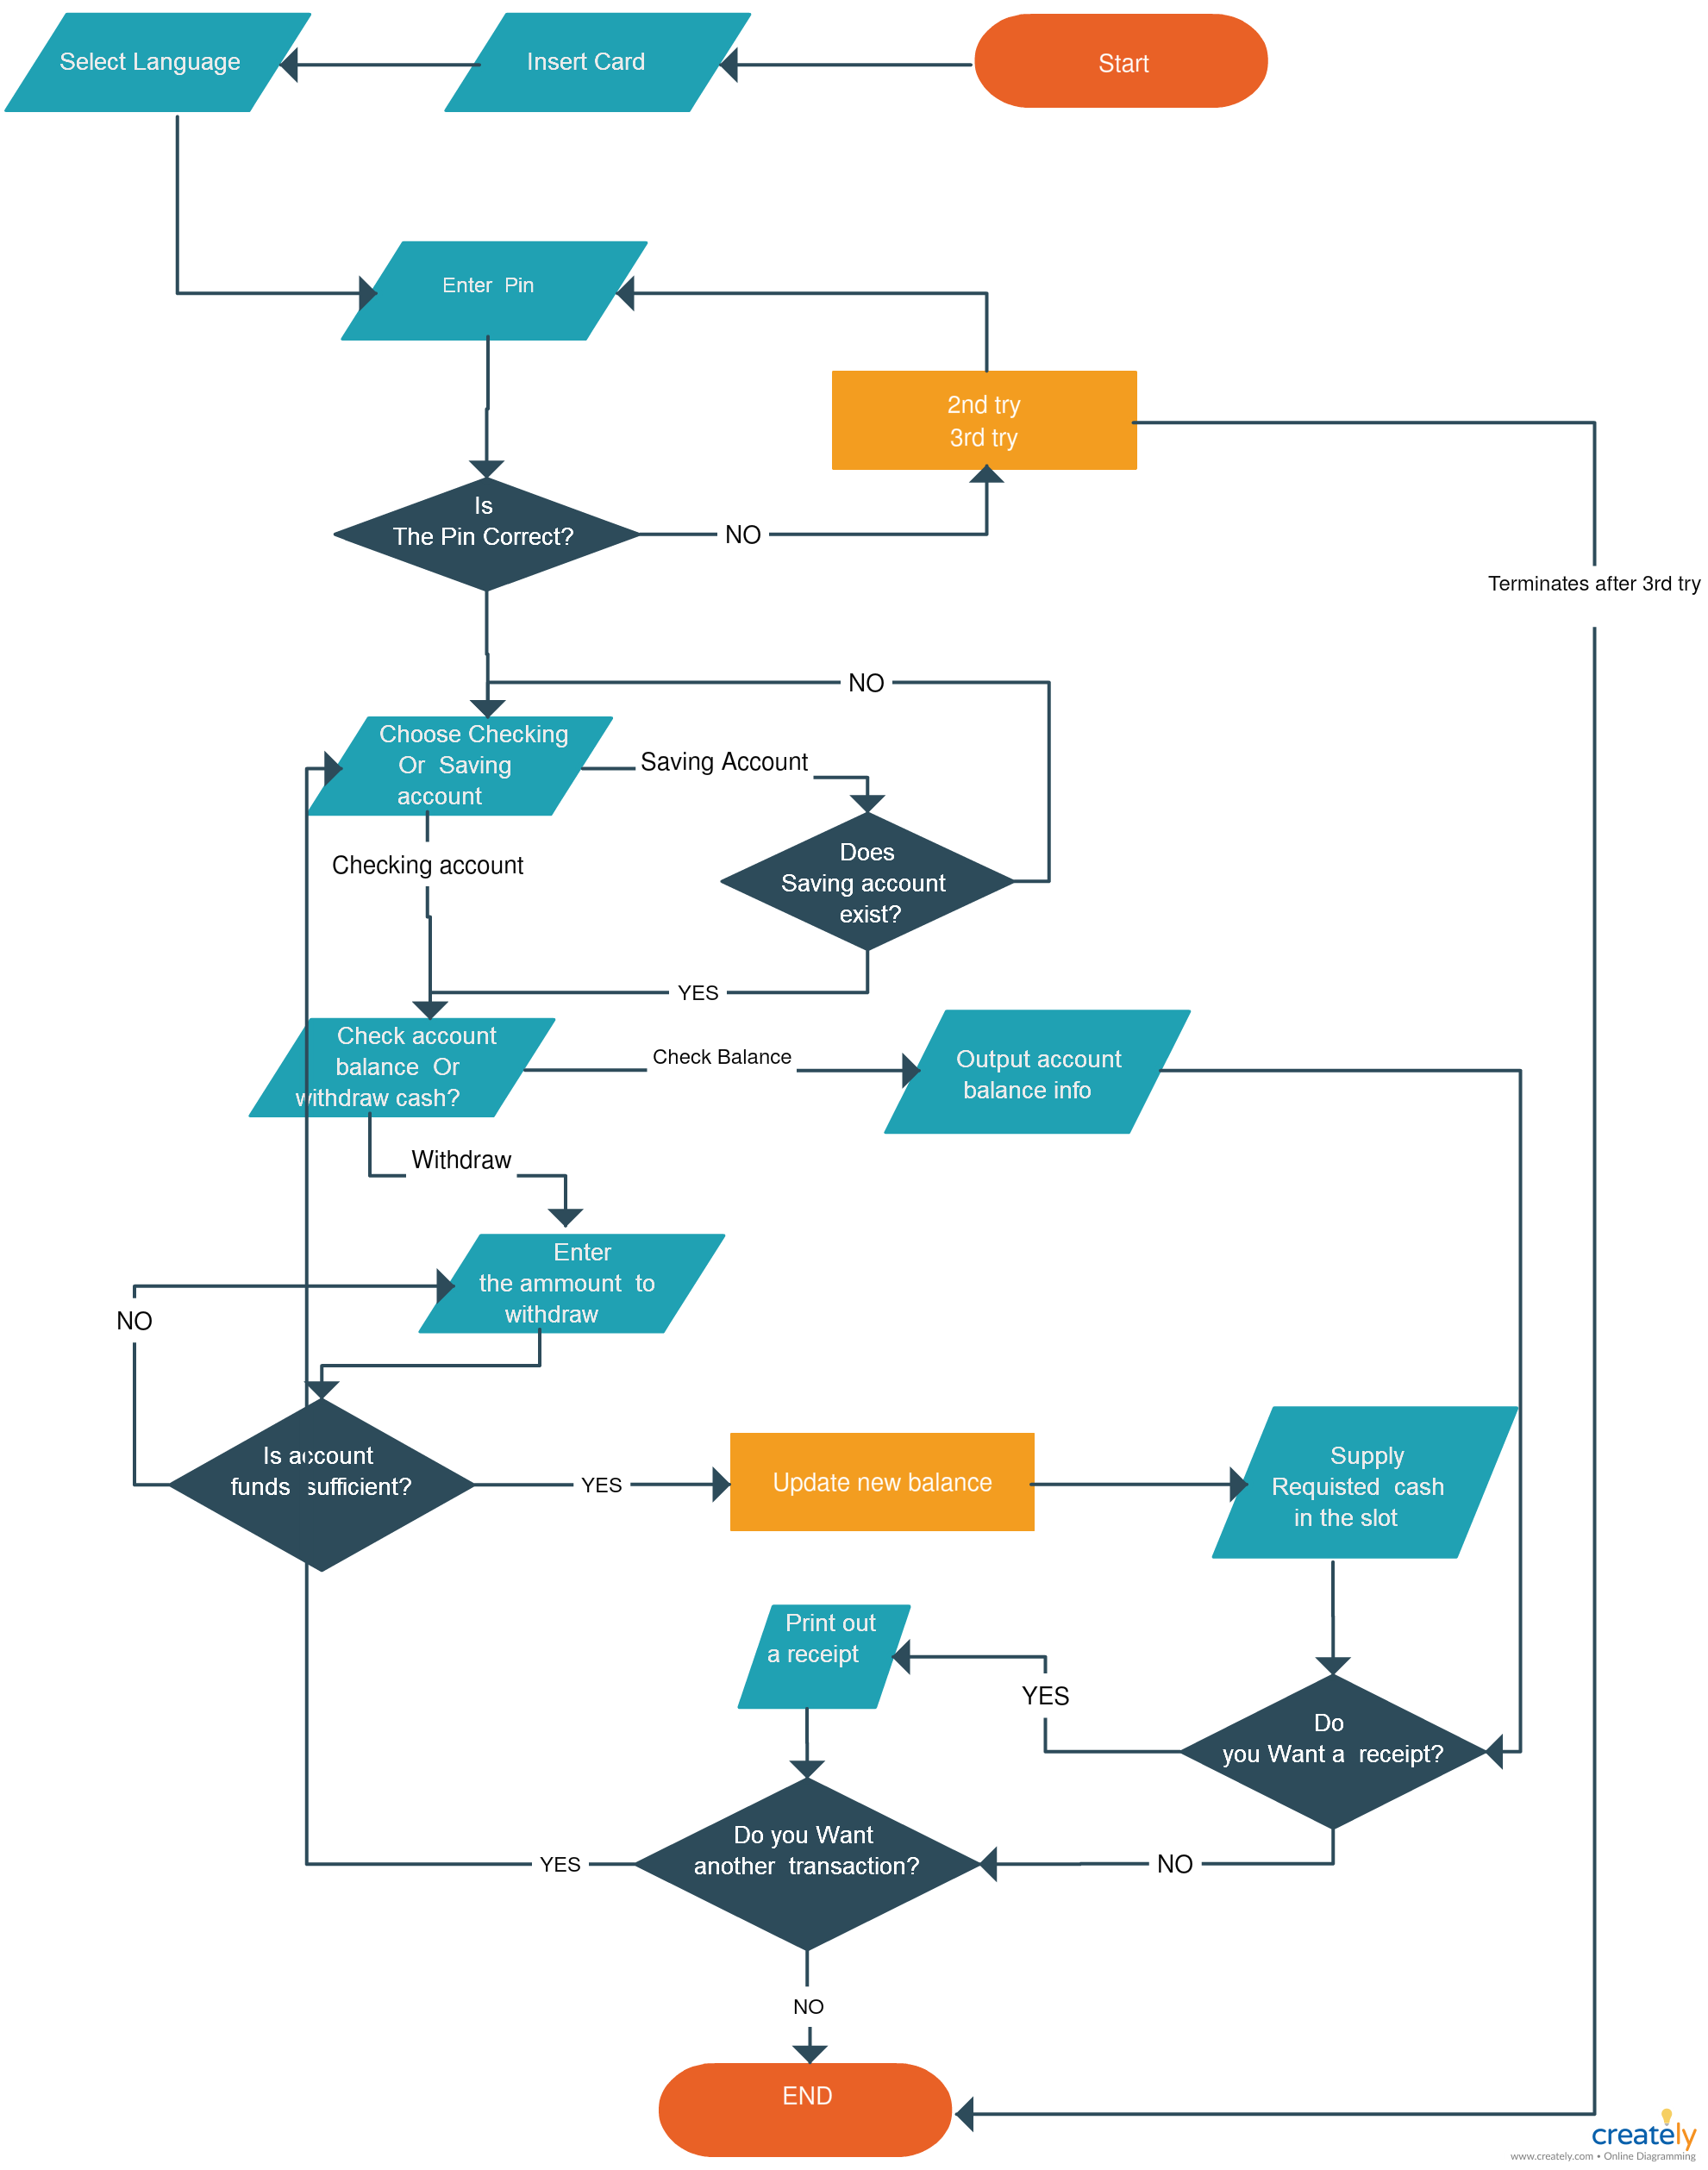 hight resolution of atm flowchart atm flowchart illustrating the process flow of an atm machine atm process flowchart diagram is a great way to layout each segment of the